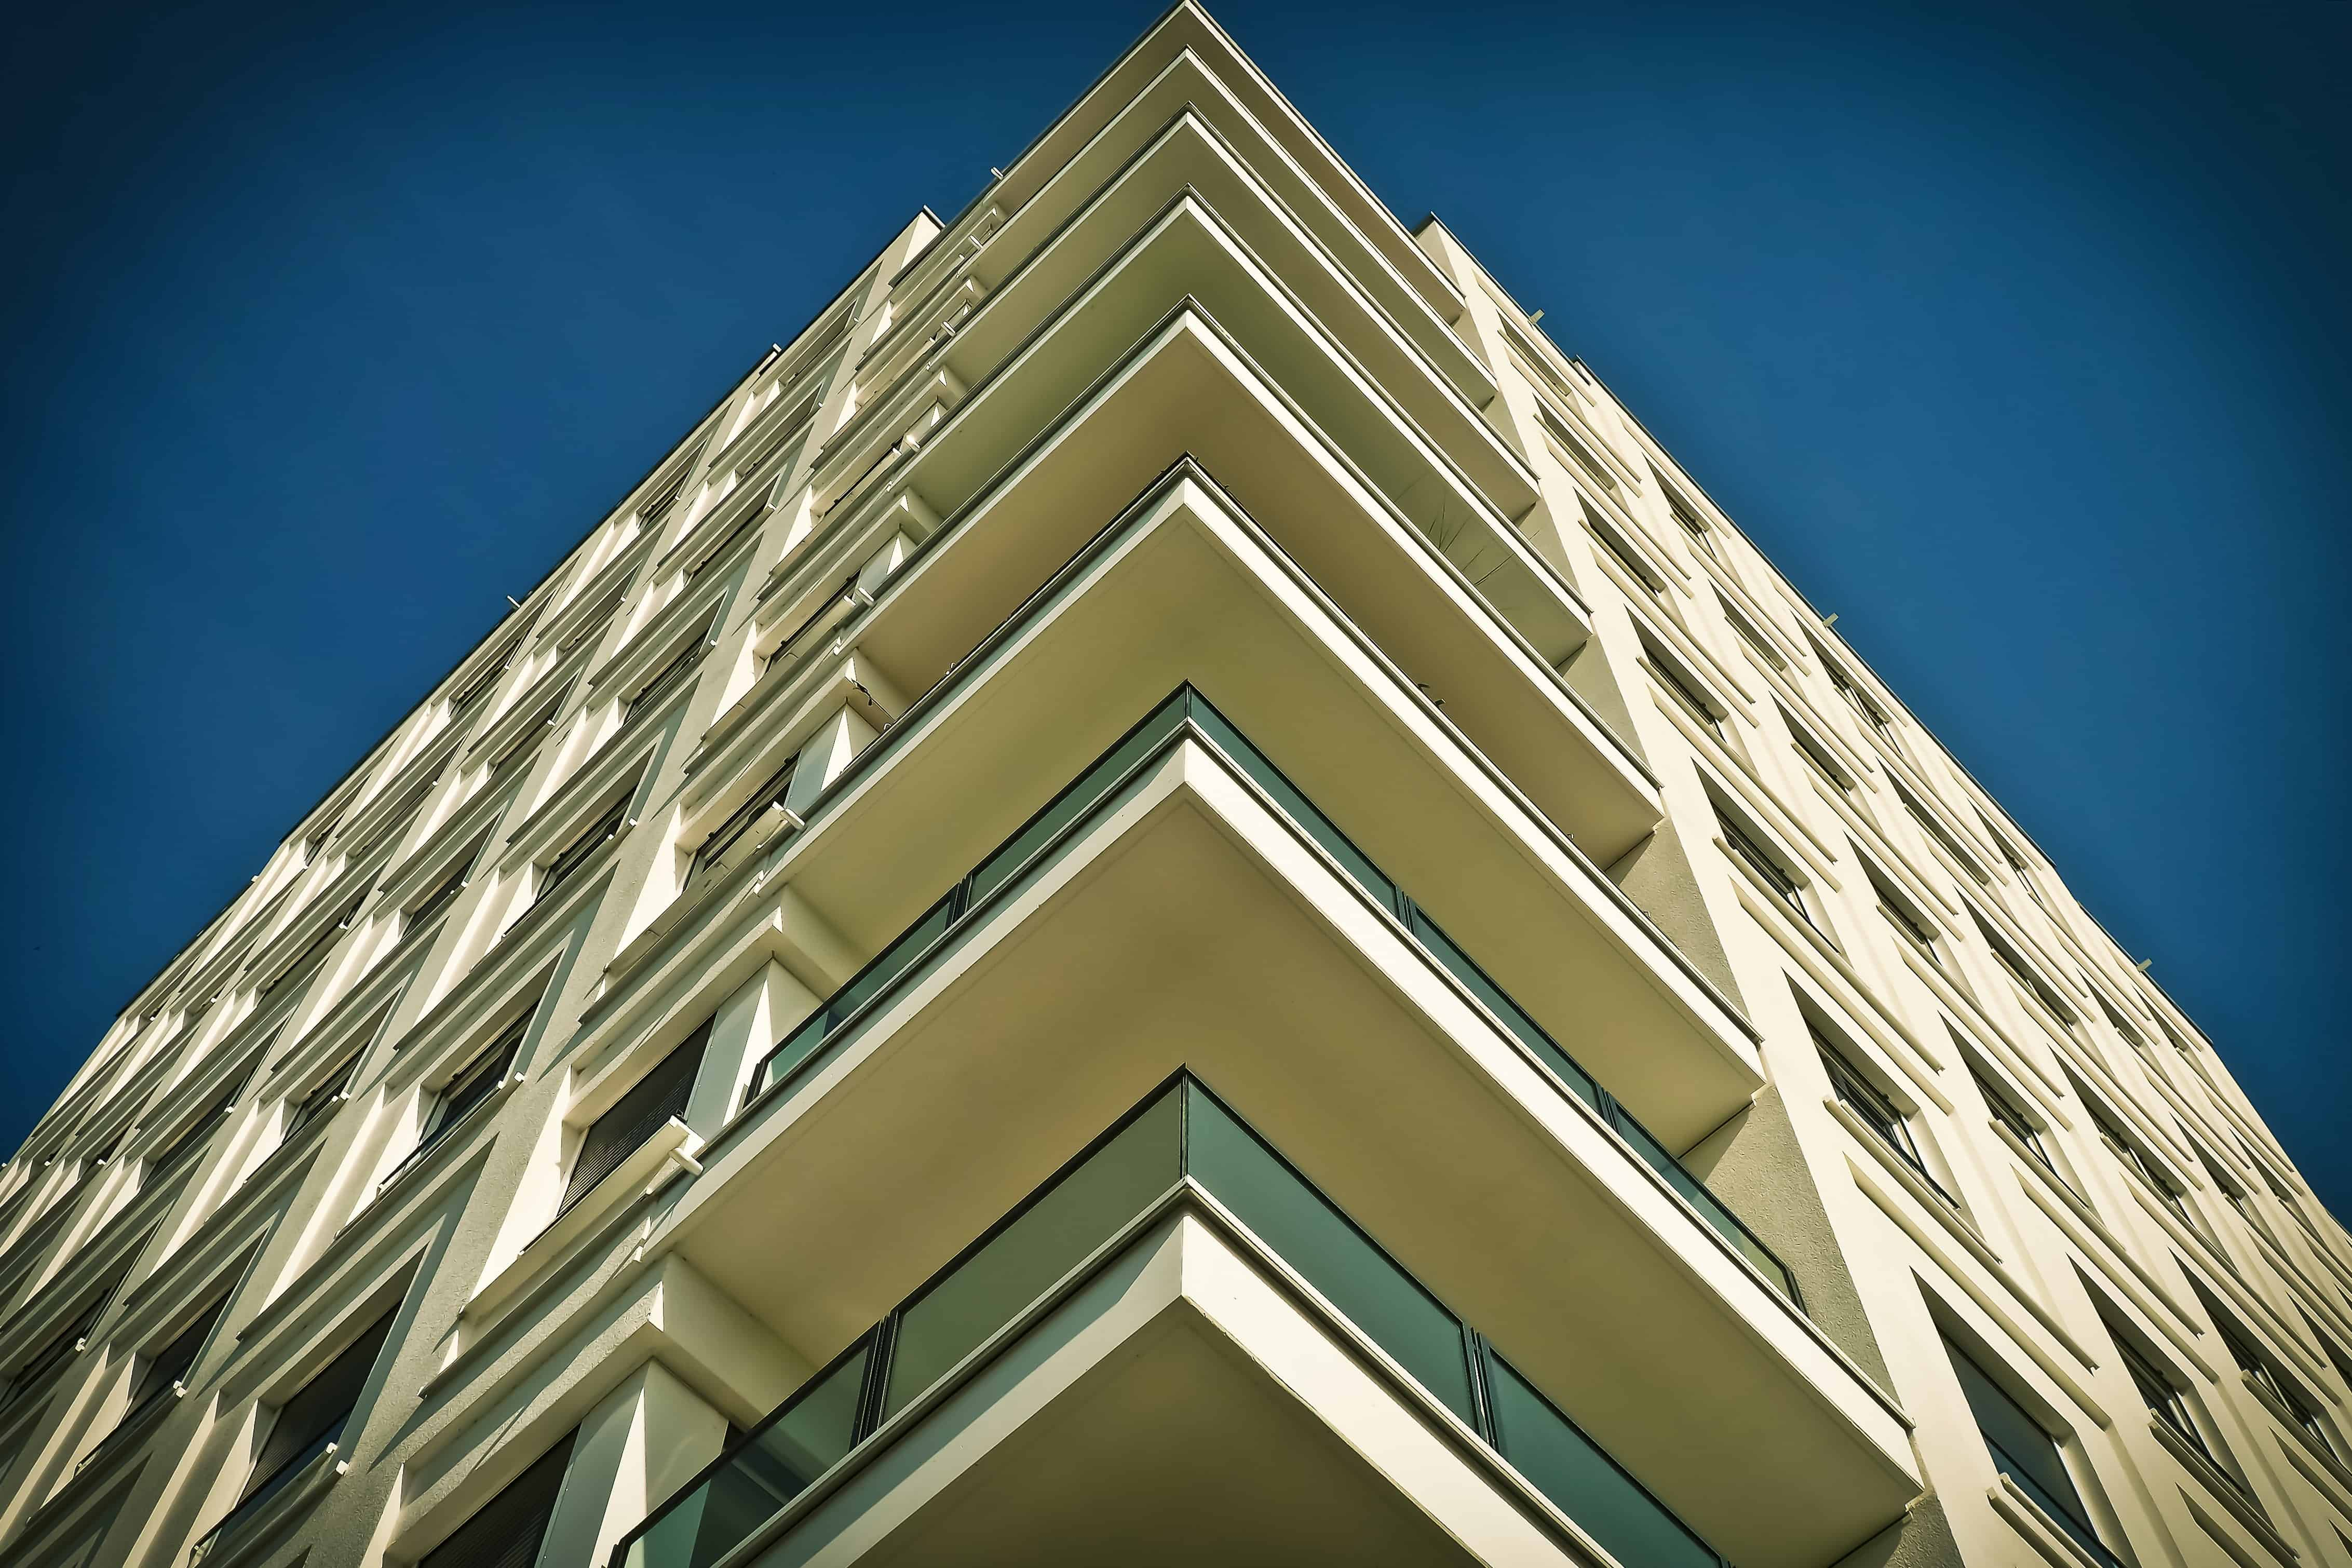 fire insurance claims in a condo